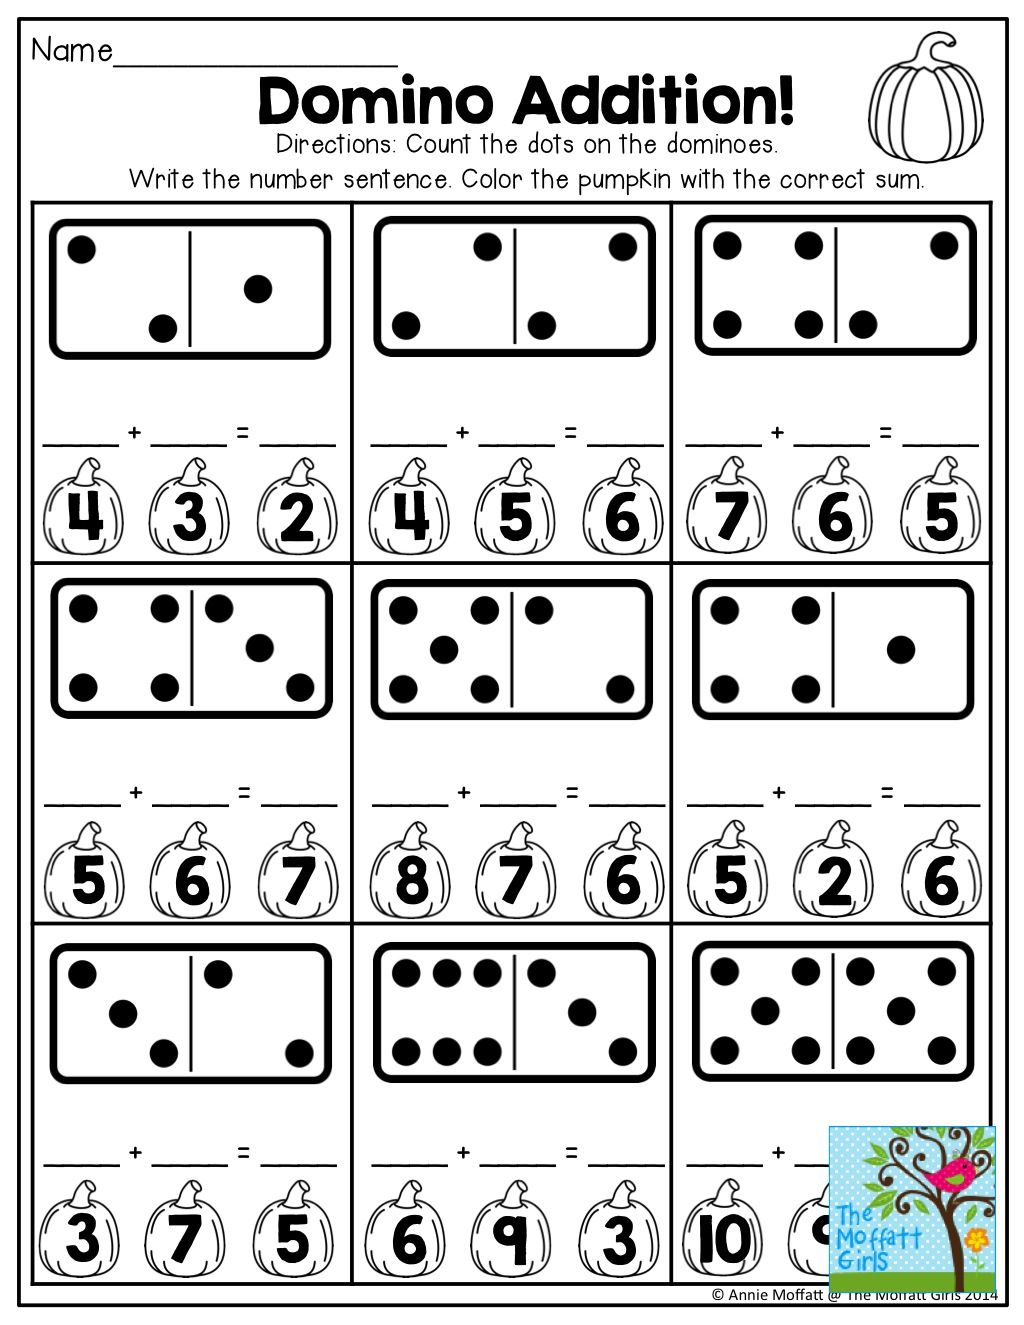 Domino Addition And Tons Of Other Fun Printables For October